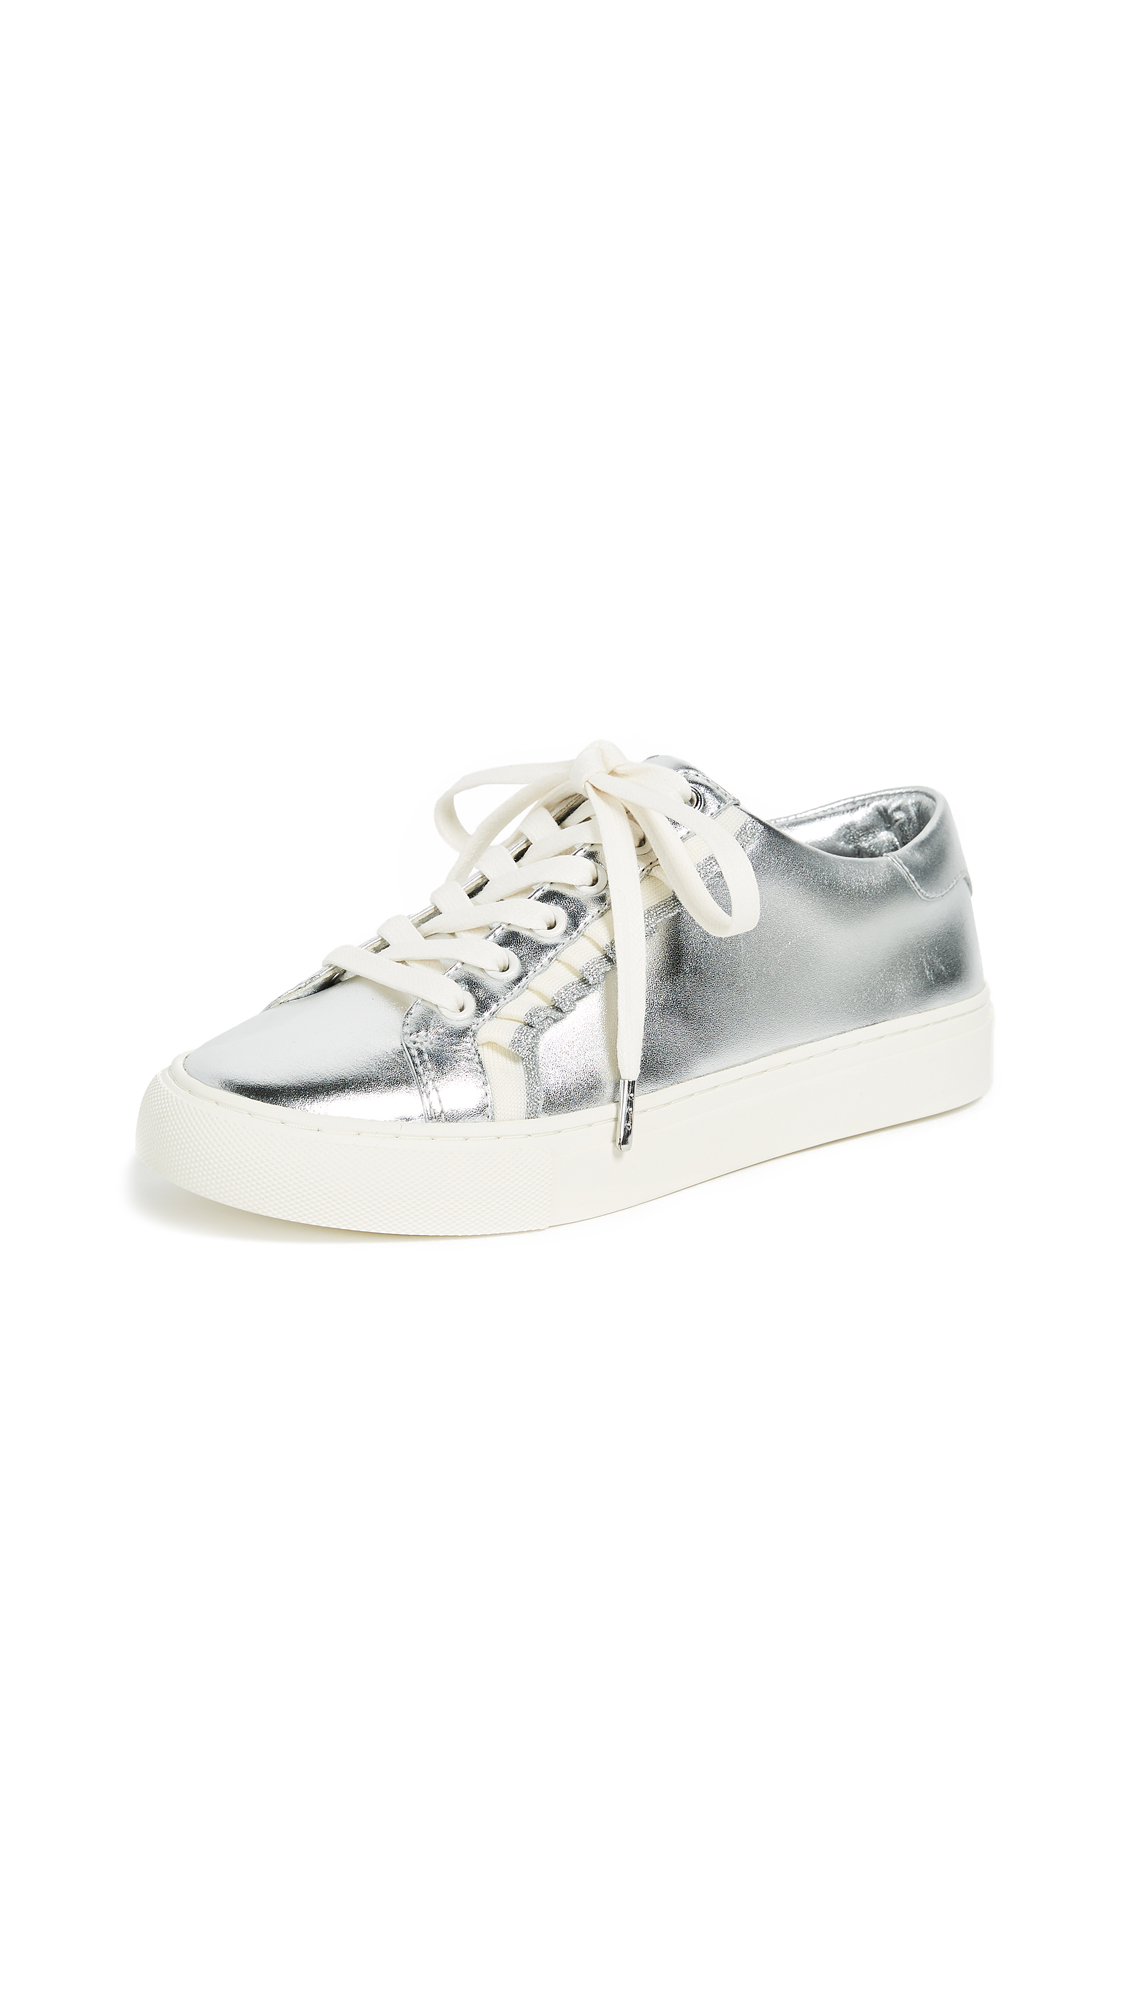 Tory Sport Ruffle Sneakers - Silver/White